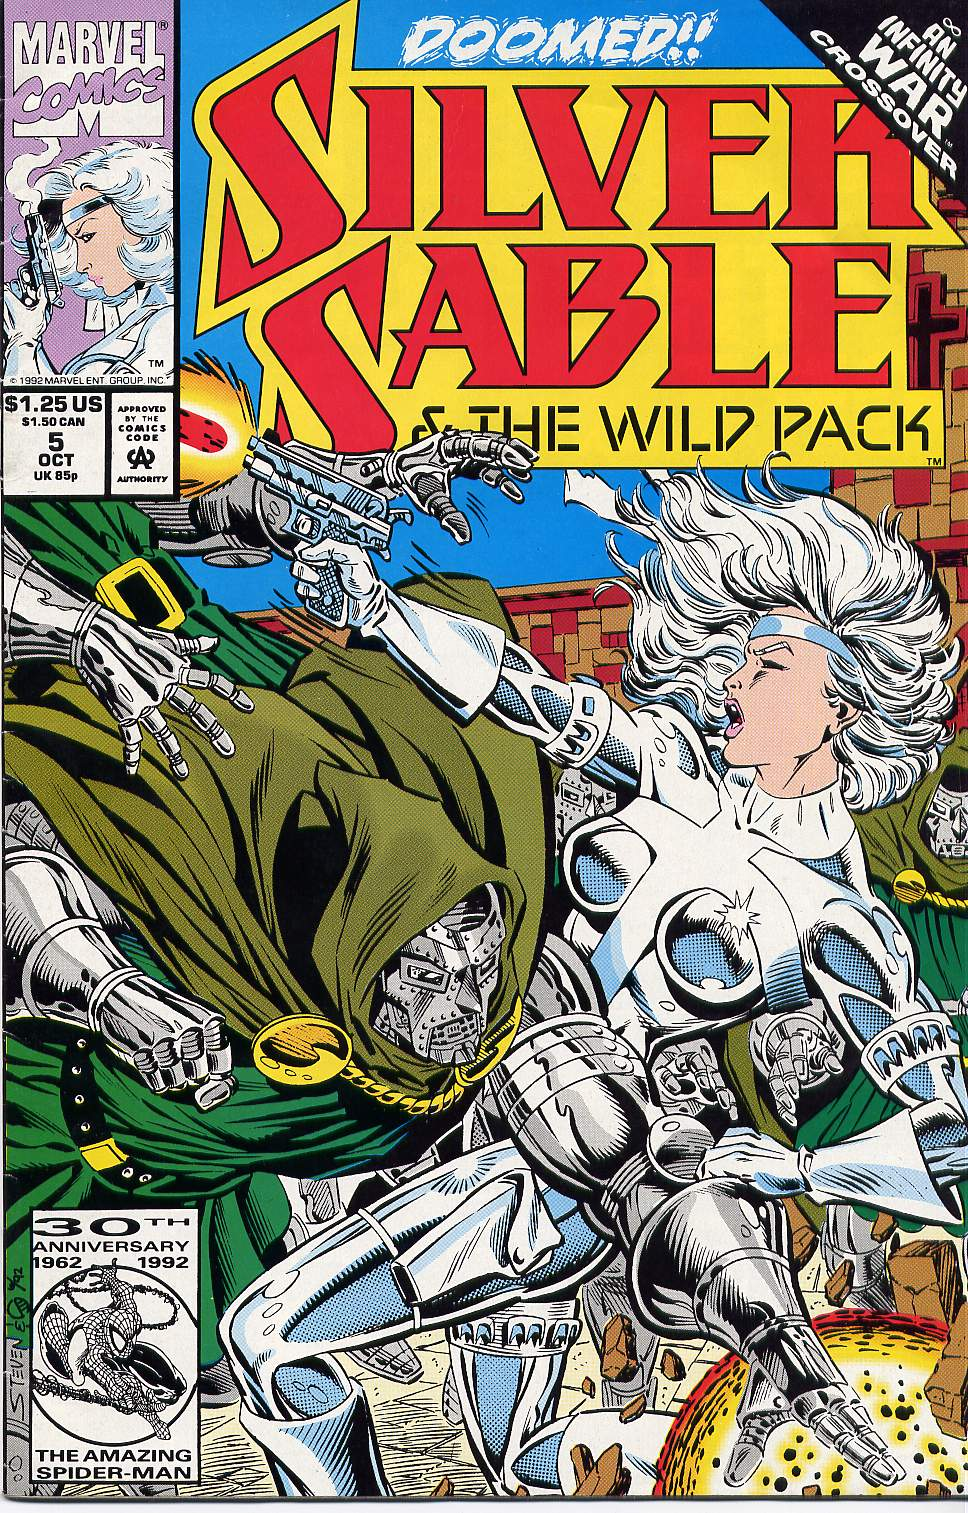 Read online Silver Sable and the Wild Pack comic -  Issue #5 - 1